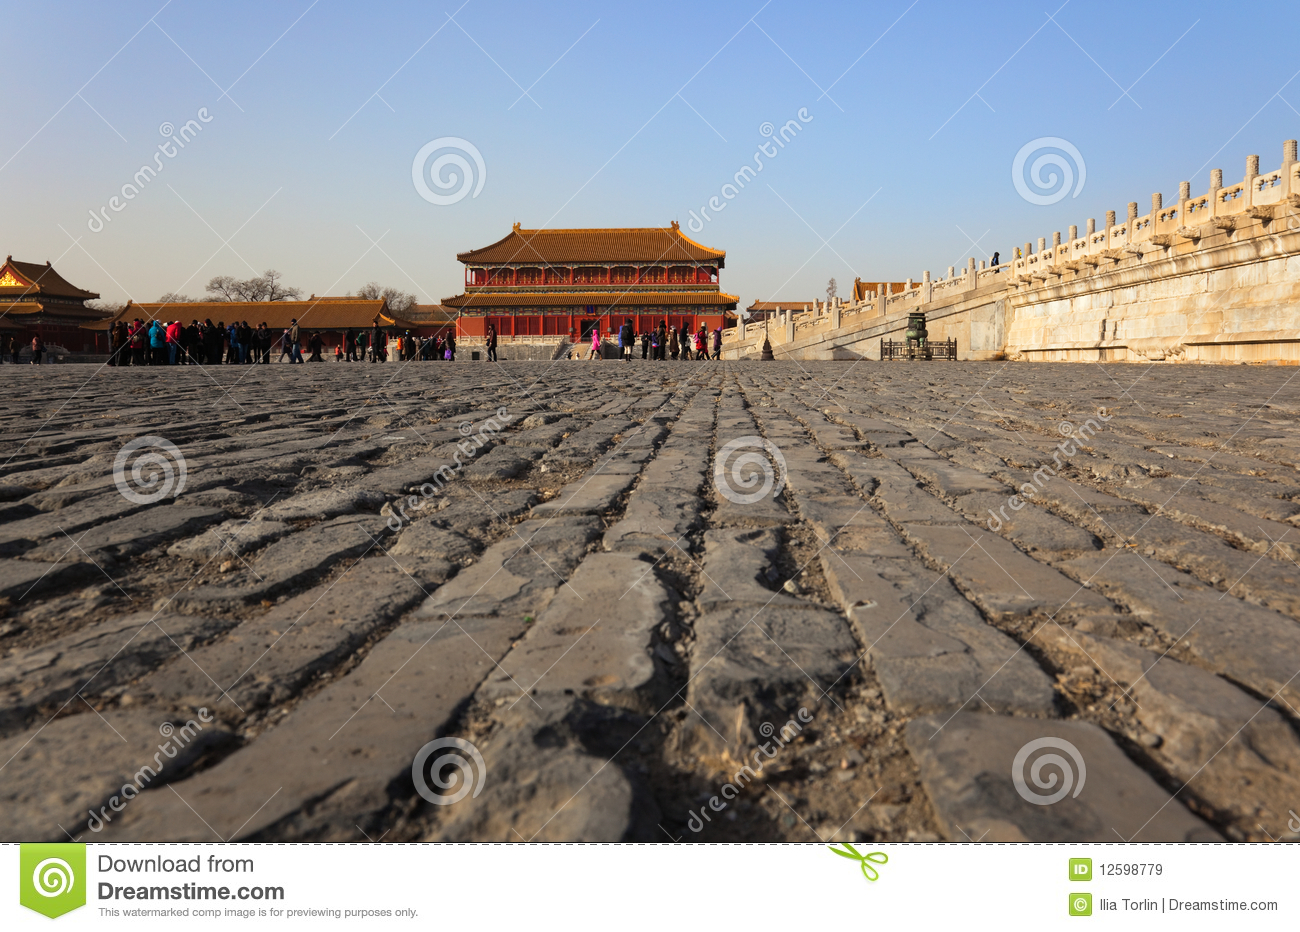 Ancient Bricks Of Courtyard With Hongyi Pavilion And The Marble Terrace Three Great Halls Palace On Background Forbidden City Beijing China